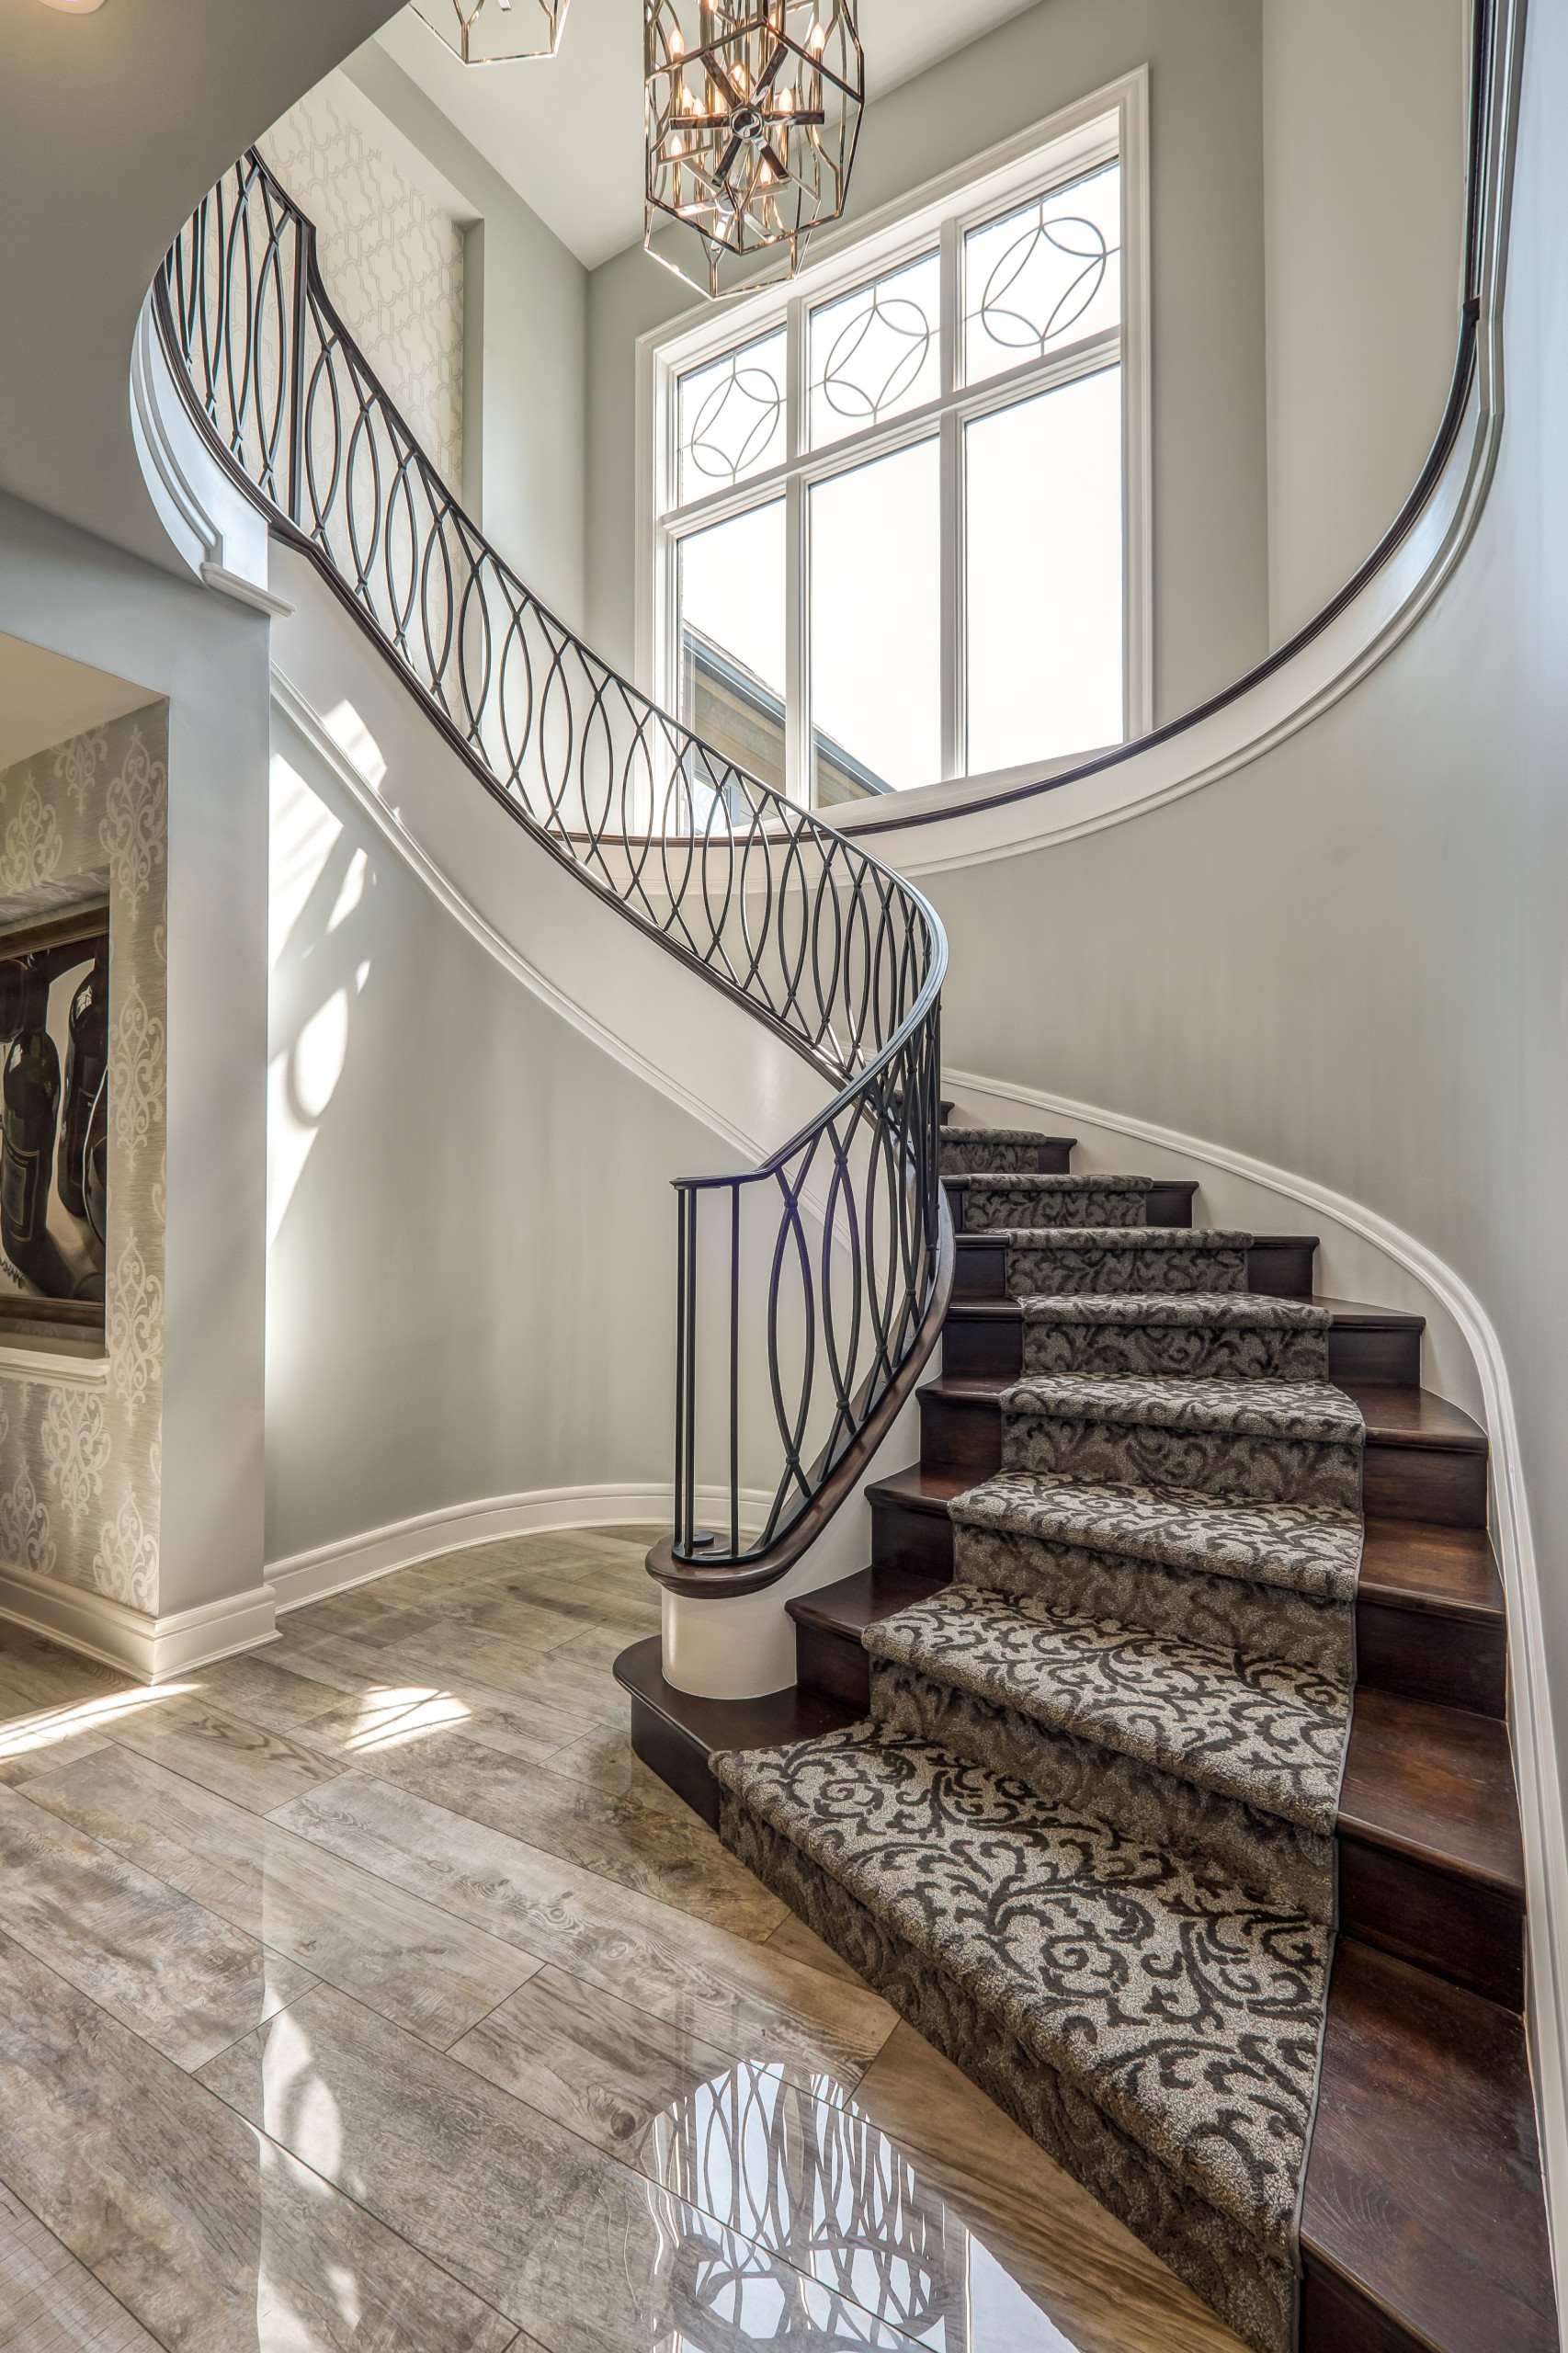 75 Beautiful Carpeted Staircase Pictures Ideas Houzz | Decorative Carpet For Stairs | Rectangular Cord Treads | Gingham | Brown | Animal Print | Stair Runner Matching Landing